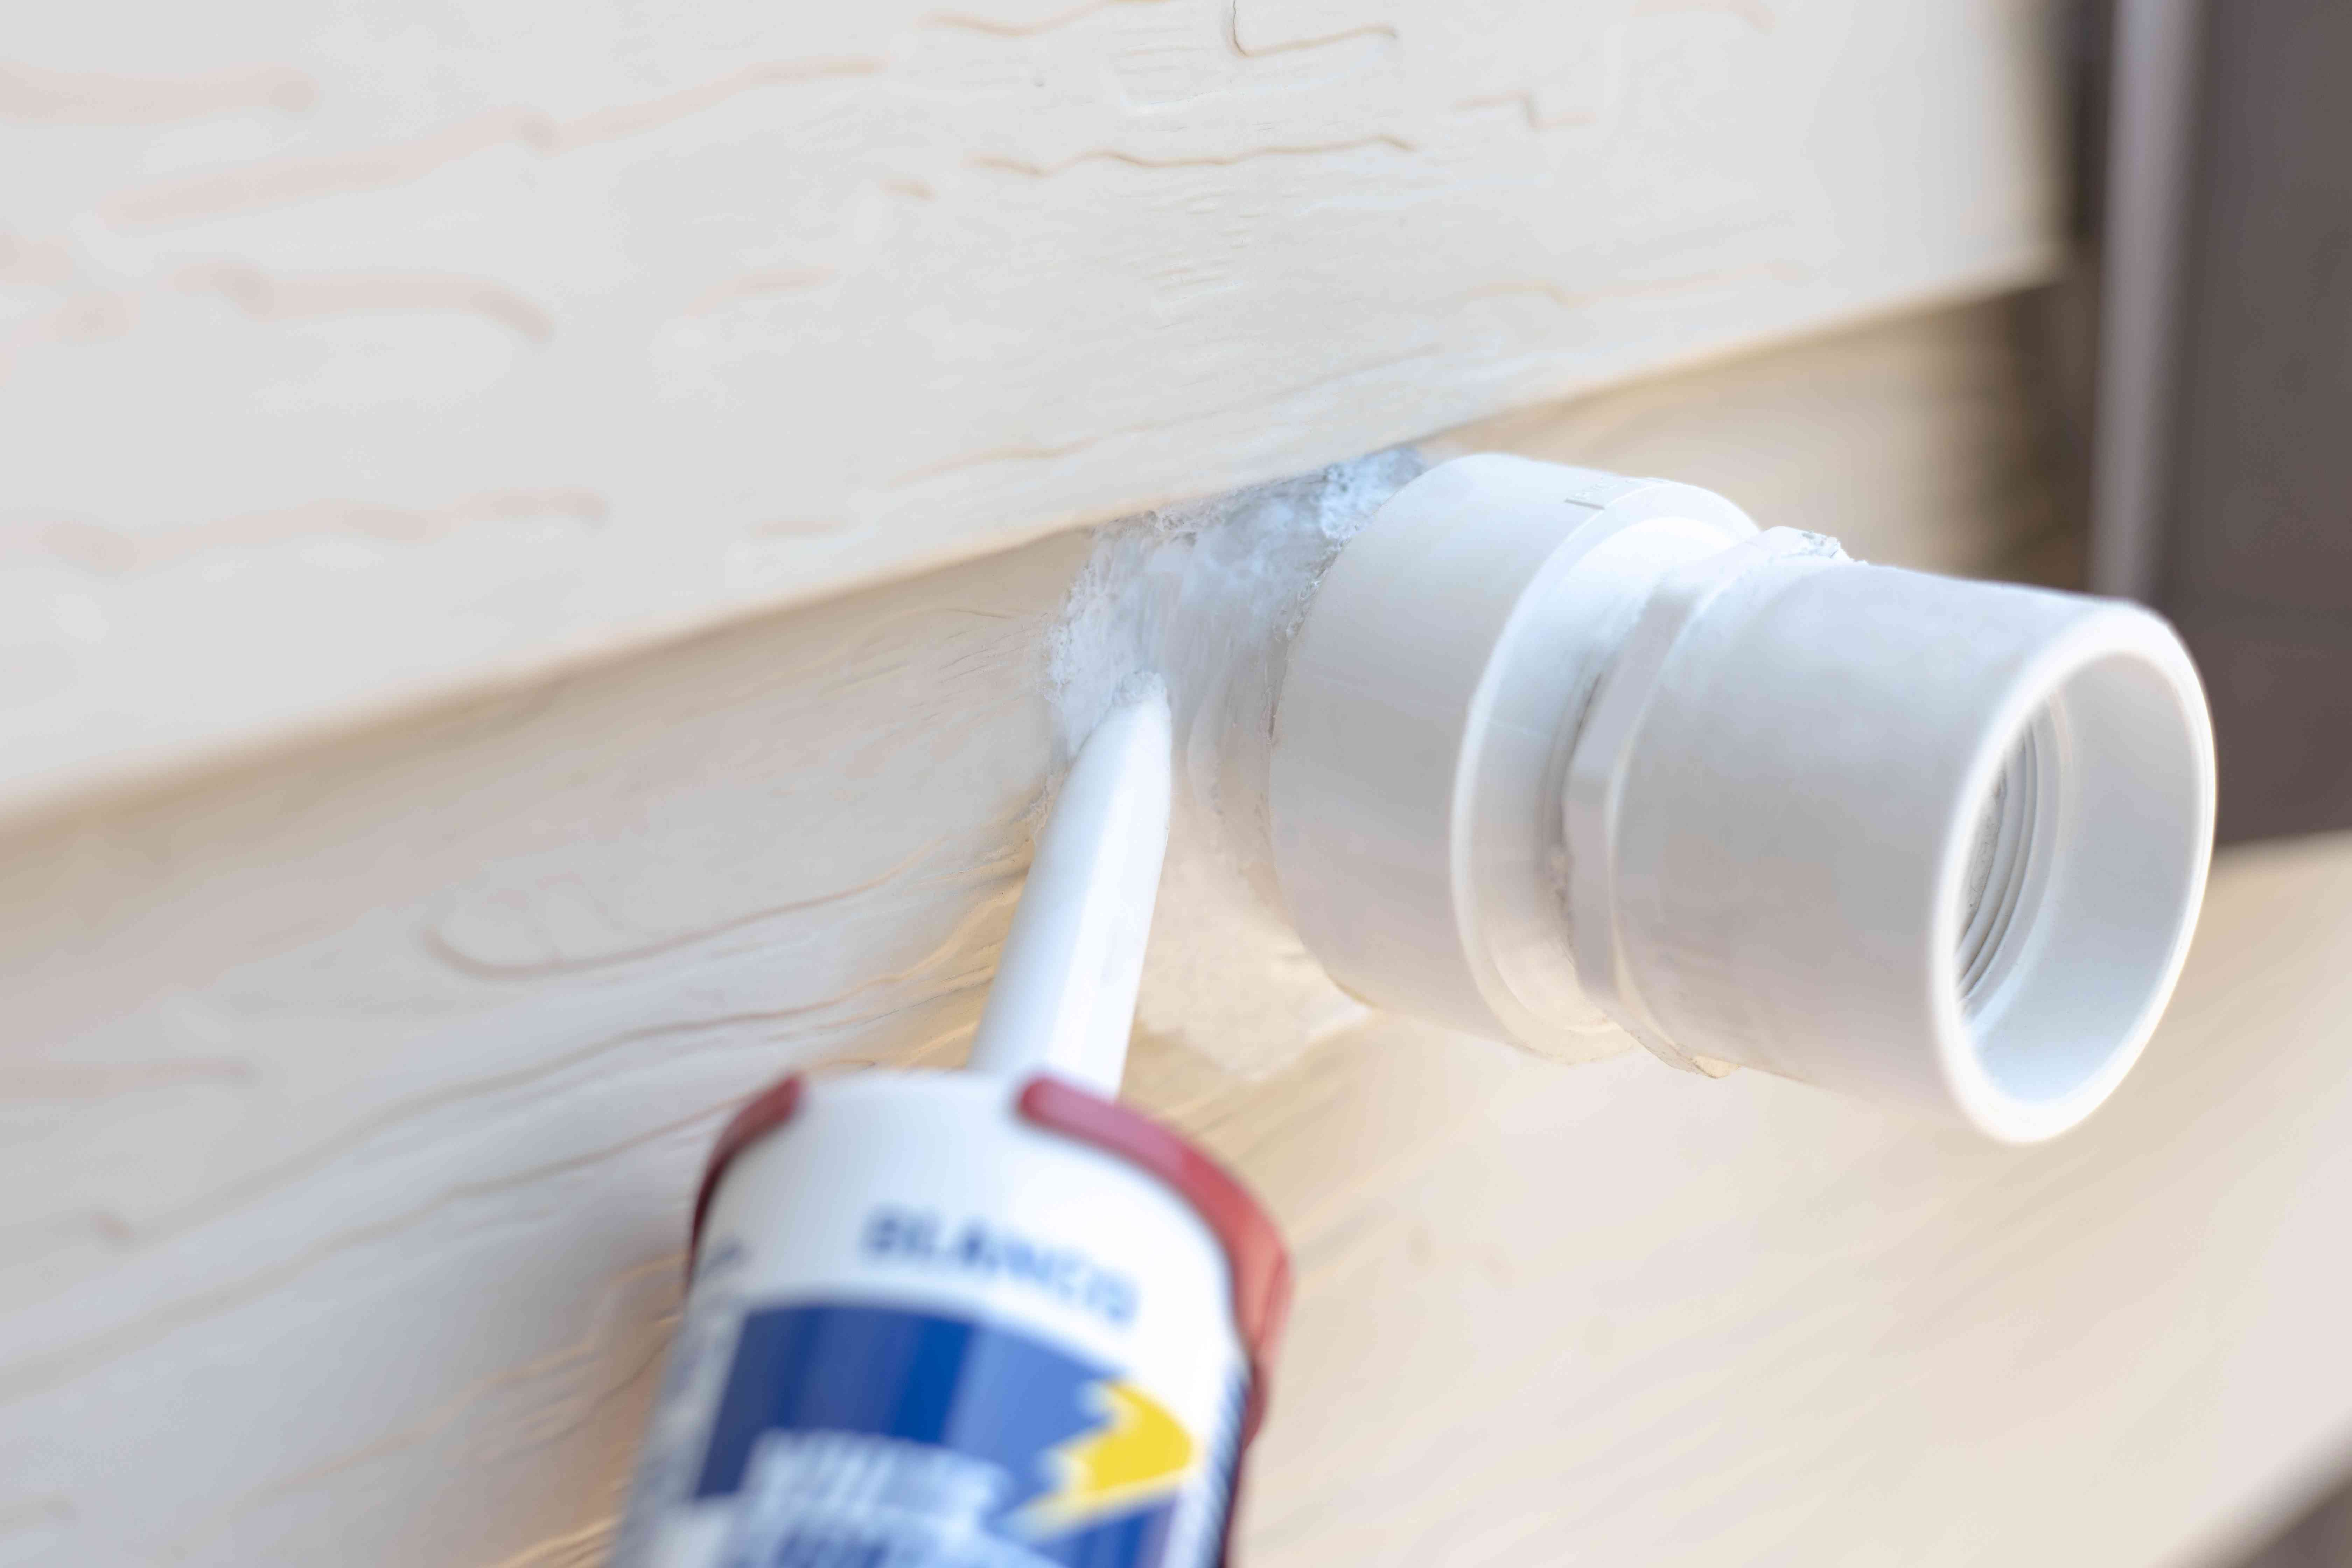 Exposed pipe being ceiled around edges with caulk closeup